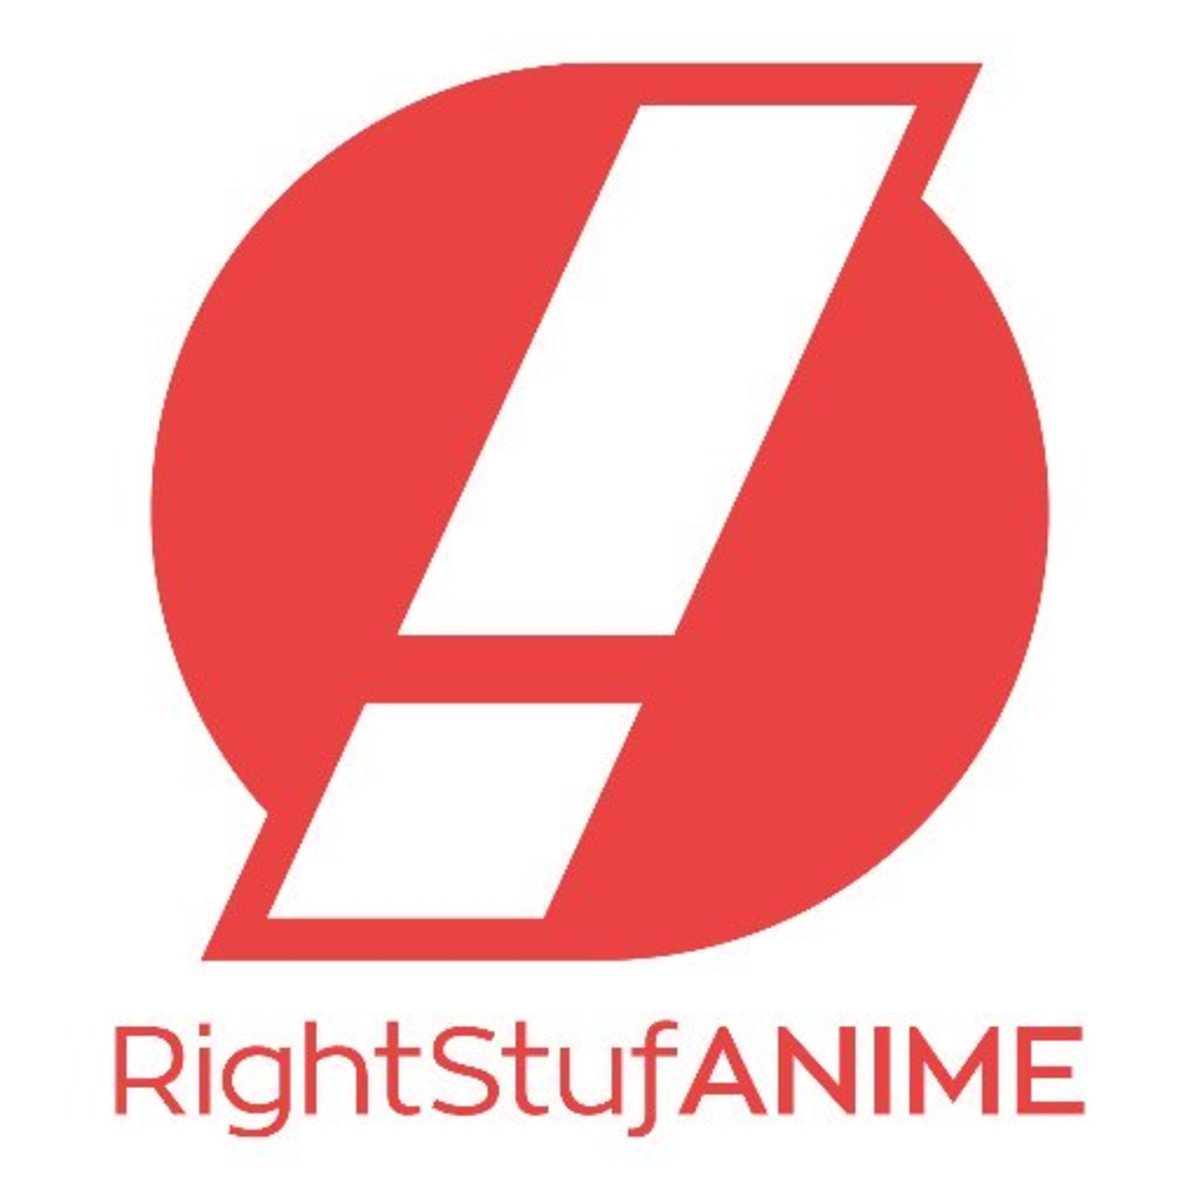 Website Review: RightStufAnime.com